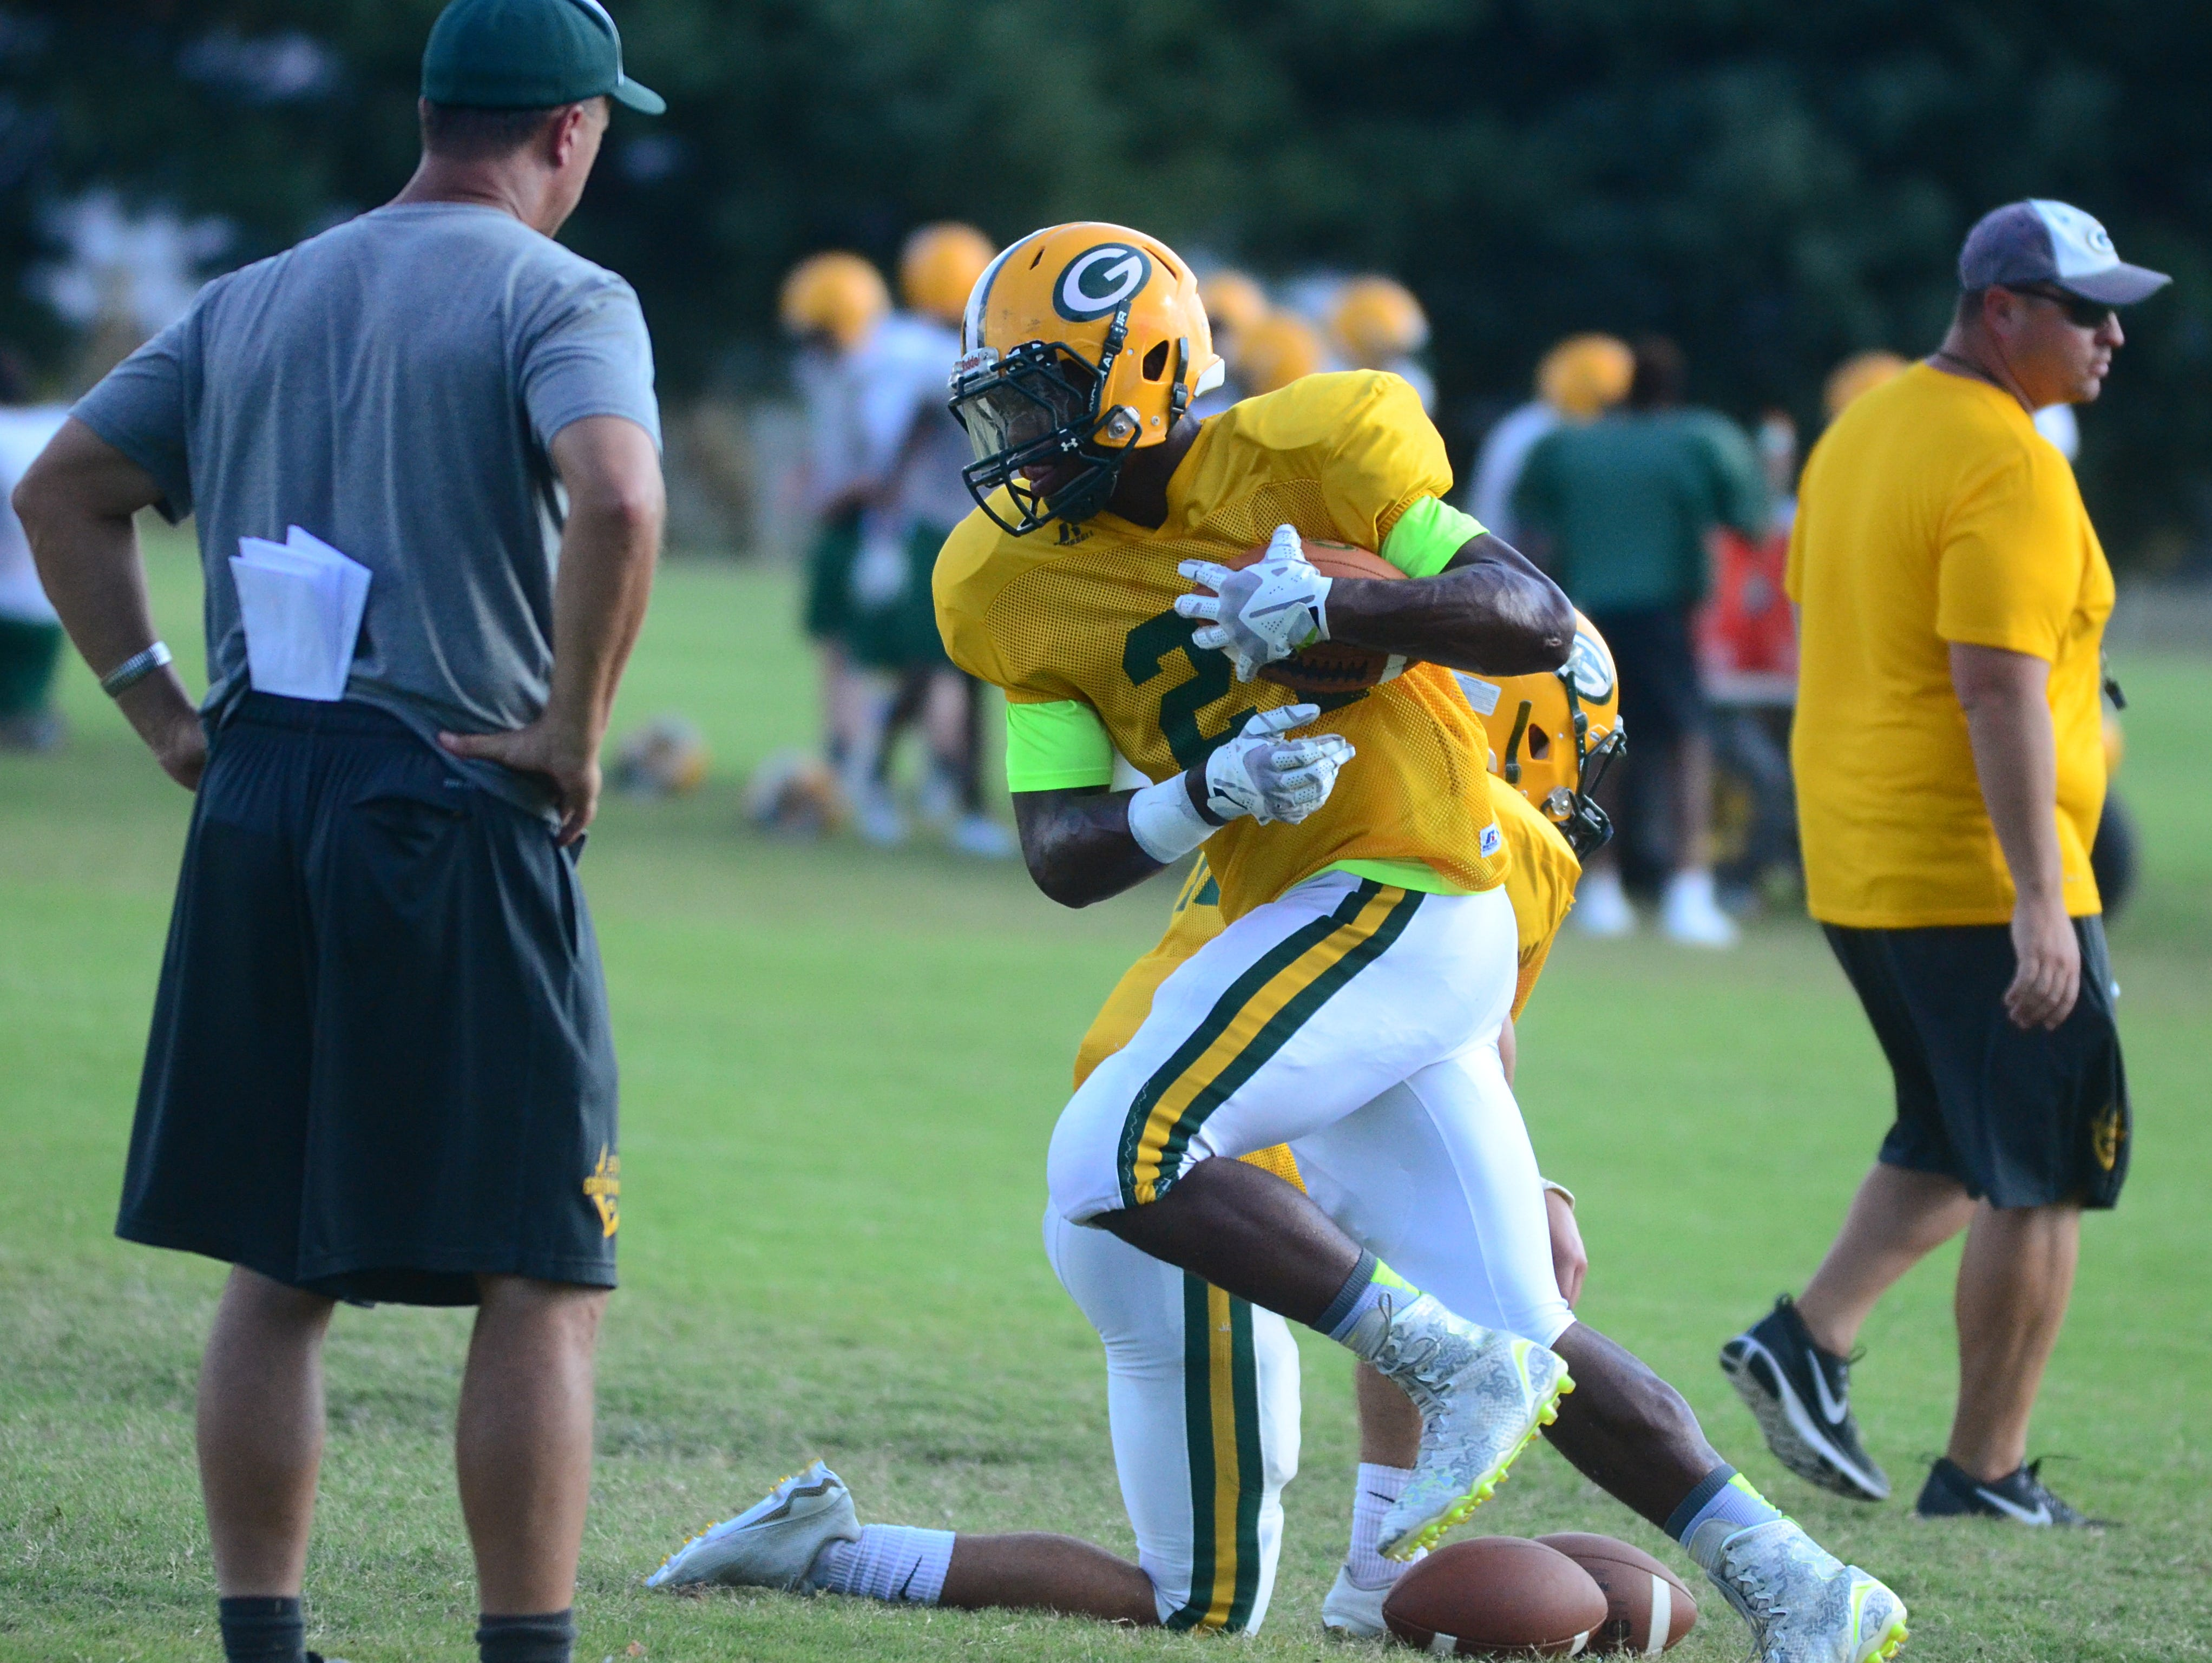 Gallatin senior Jordan Mason has nine rushing touchdowns in four games, and four of those are of at least 40 yards in length.